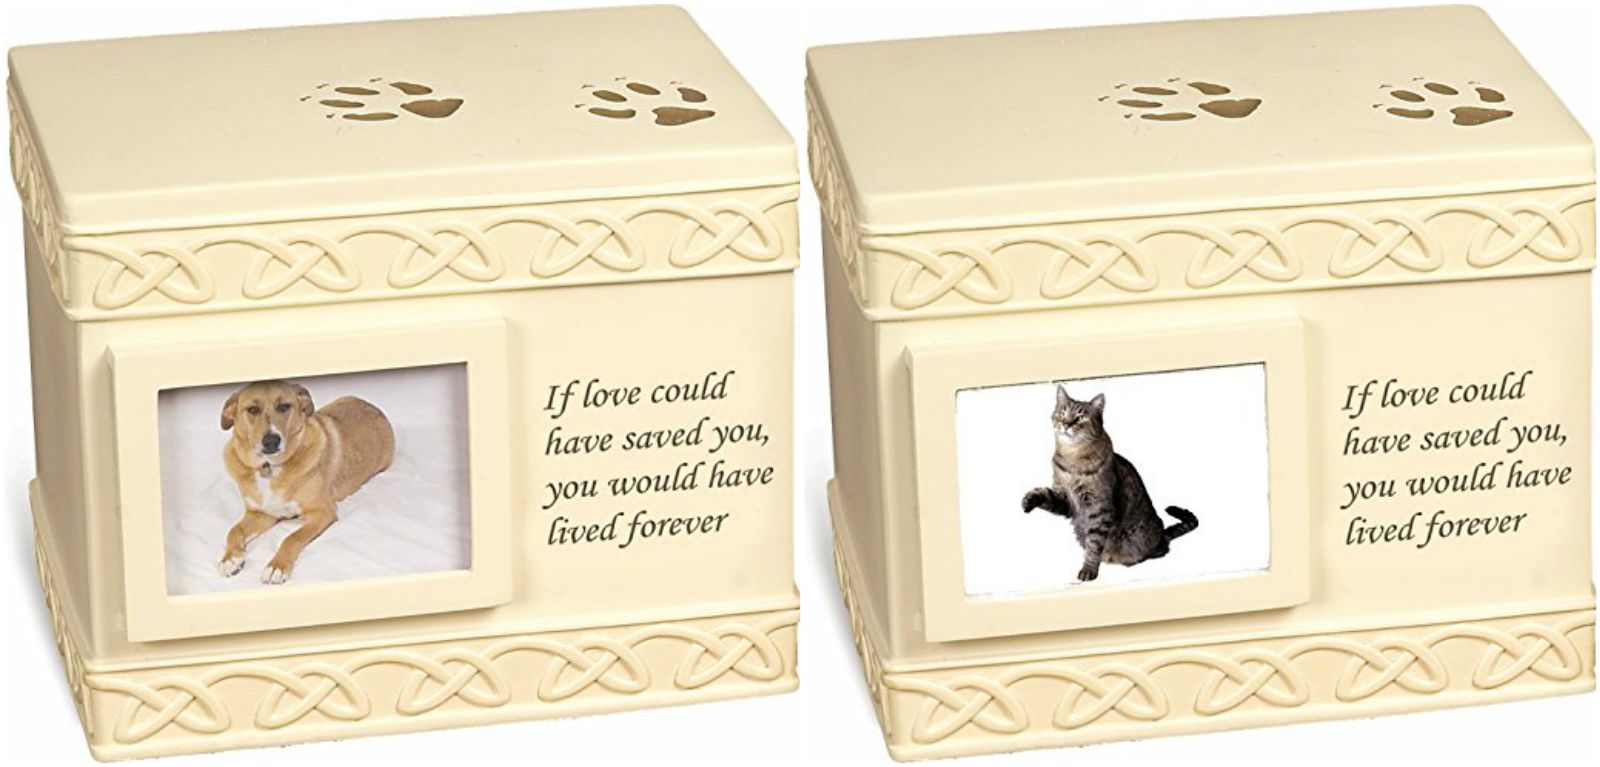 Pet urns to hold your pet's cremation ashes.